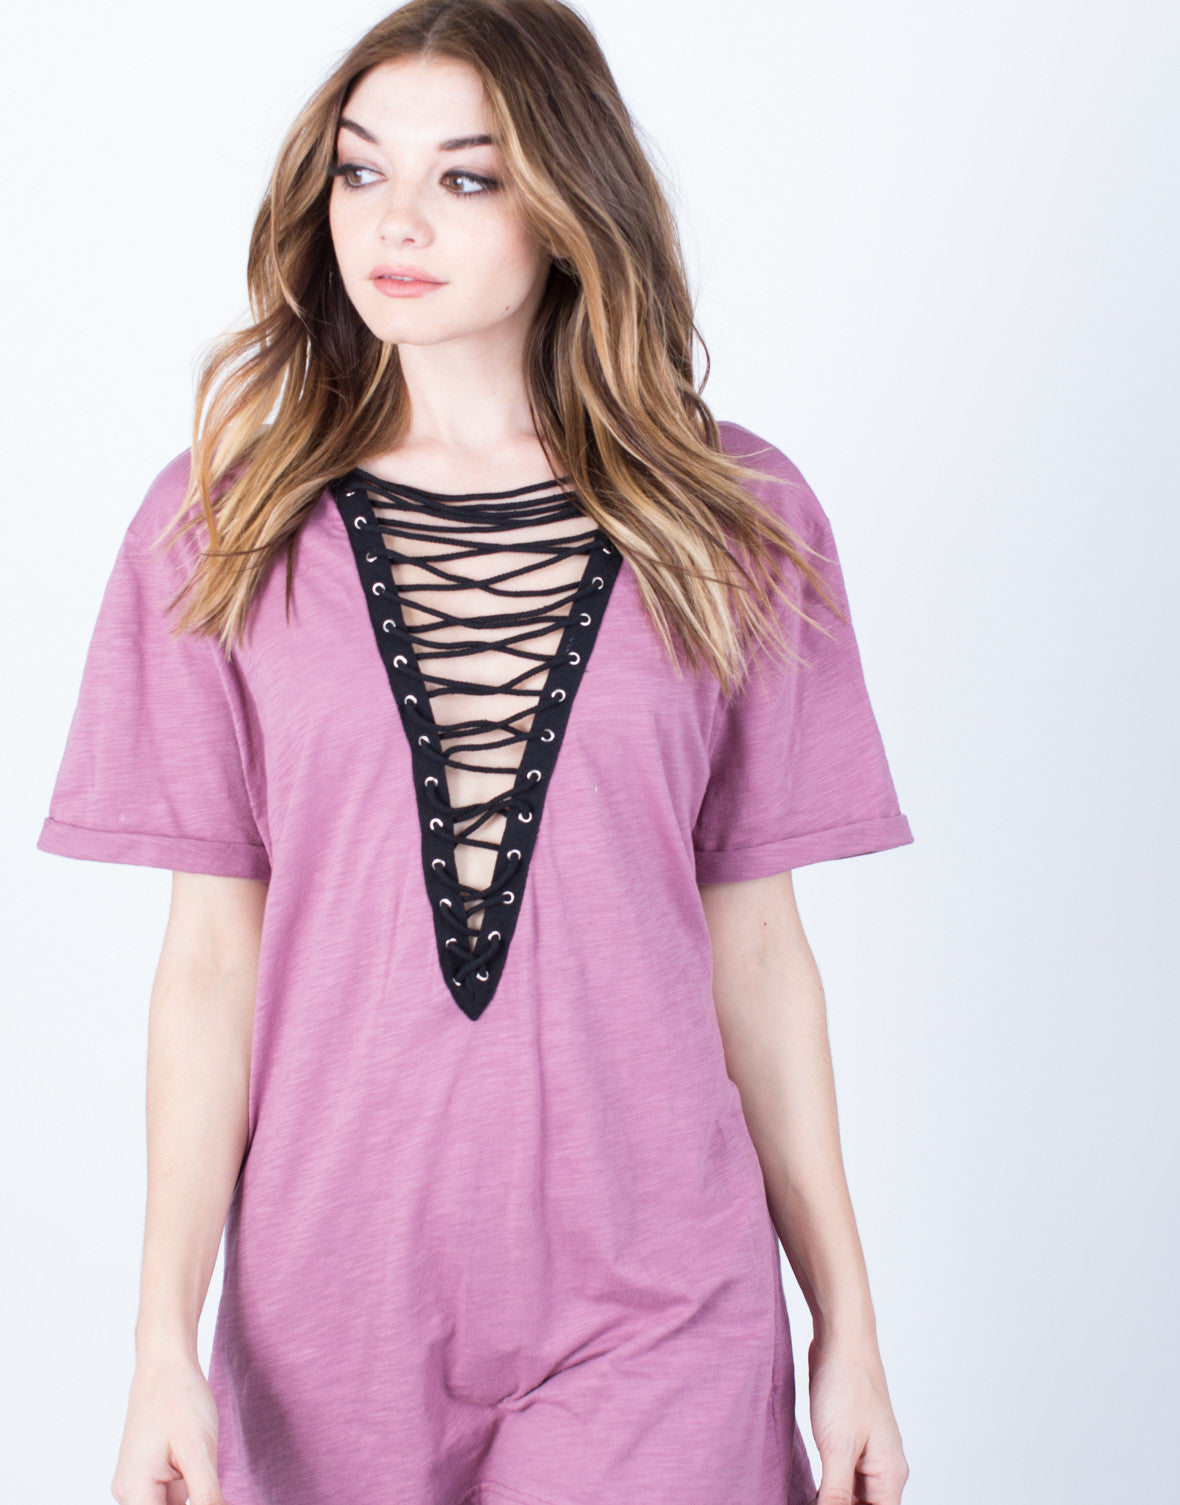 Lace-Up Deep V Tee - Criss Cross T Shirt - Oversized Tee – 2020AVE 742b1d918